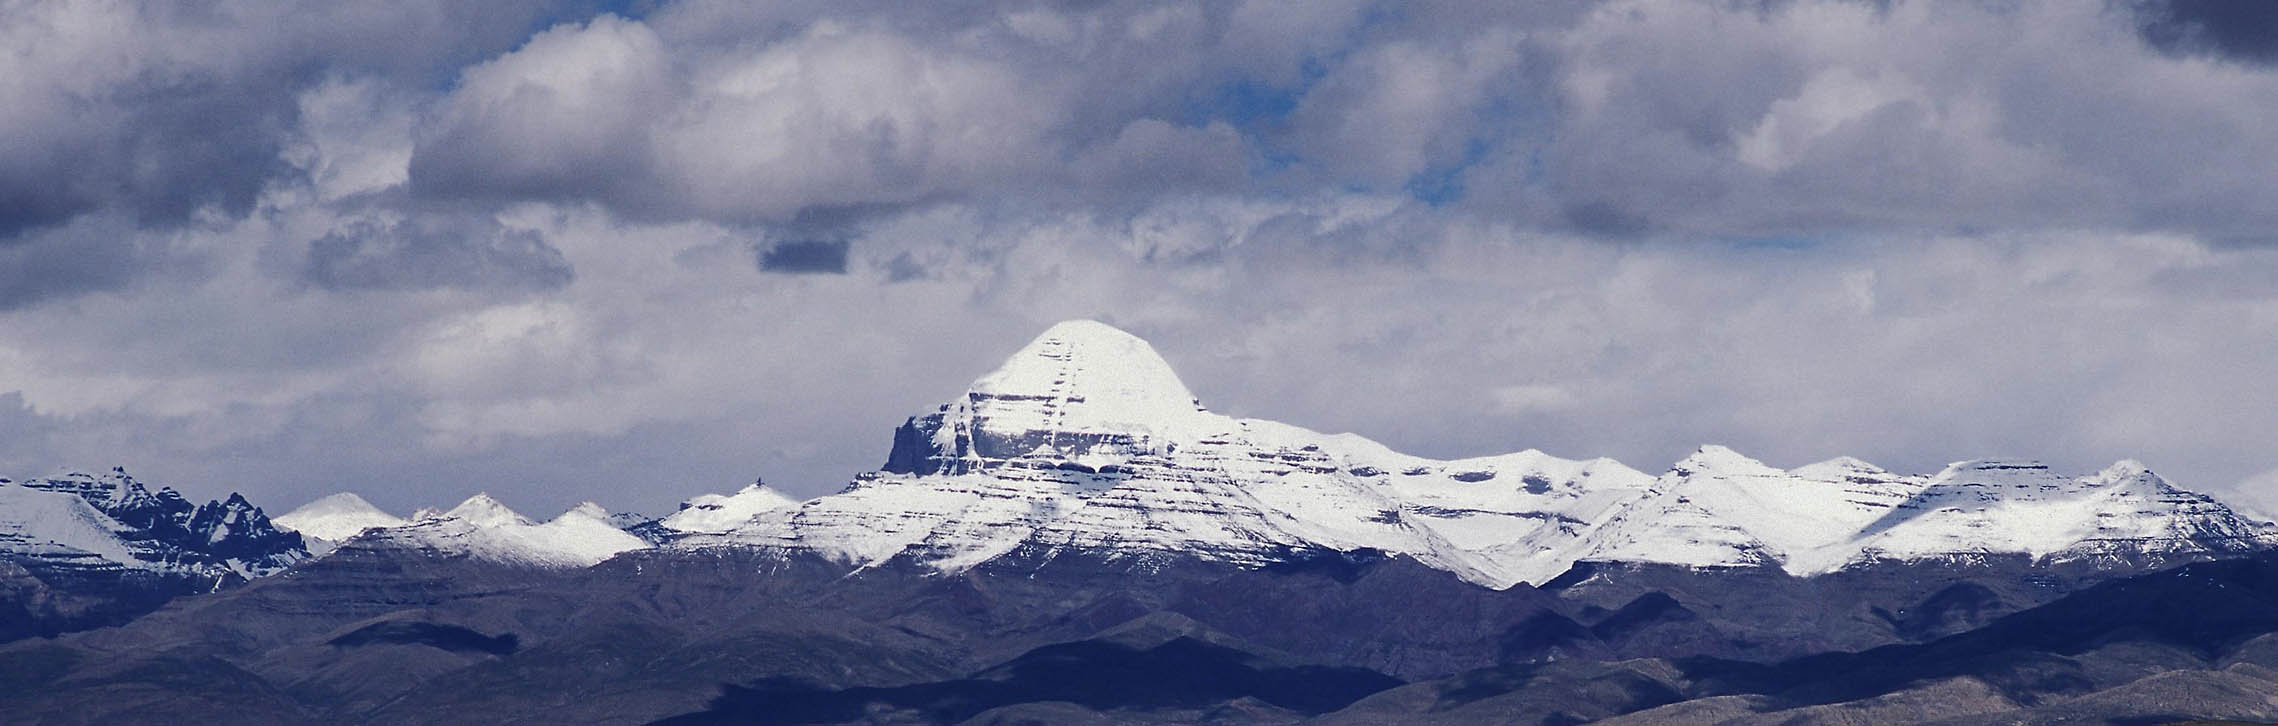 Socrates Geens, Kailash south face, Tibet